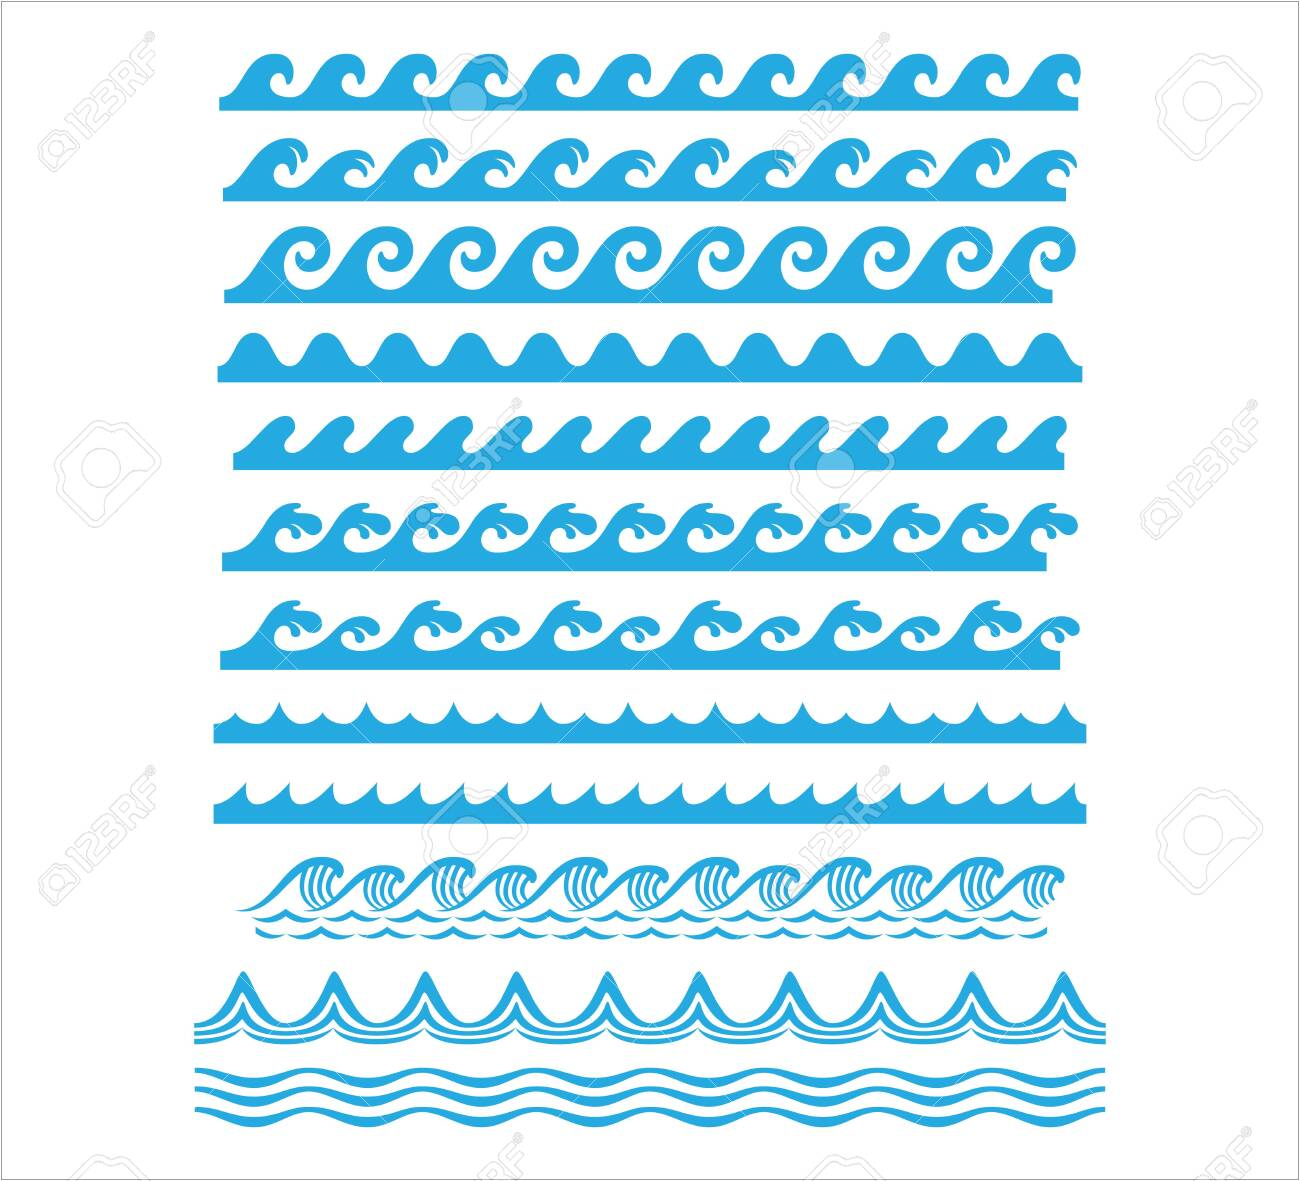 rolling ocean sea wave stream line seamless pattern vector graphic design set template - 151702349